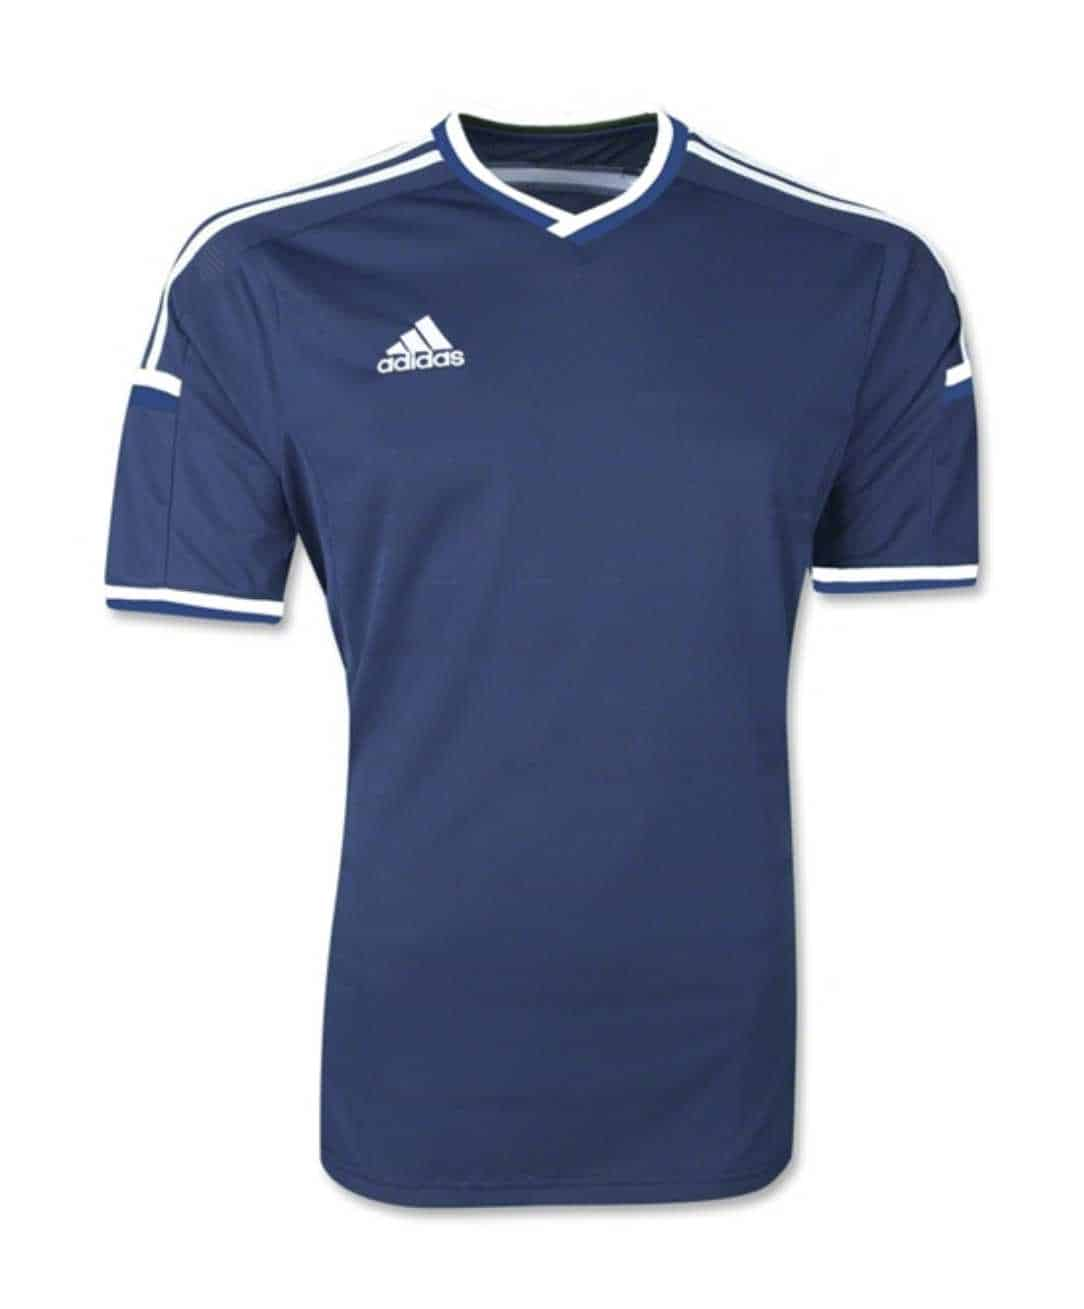 adidas Condivo 14 Soccer Uniform - TheTeamFactory.com - photo#36